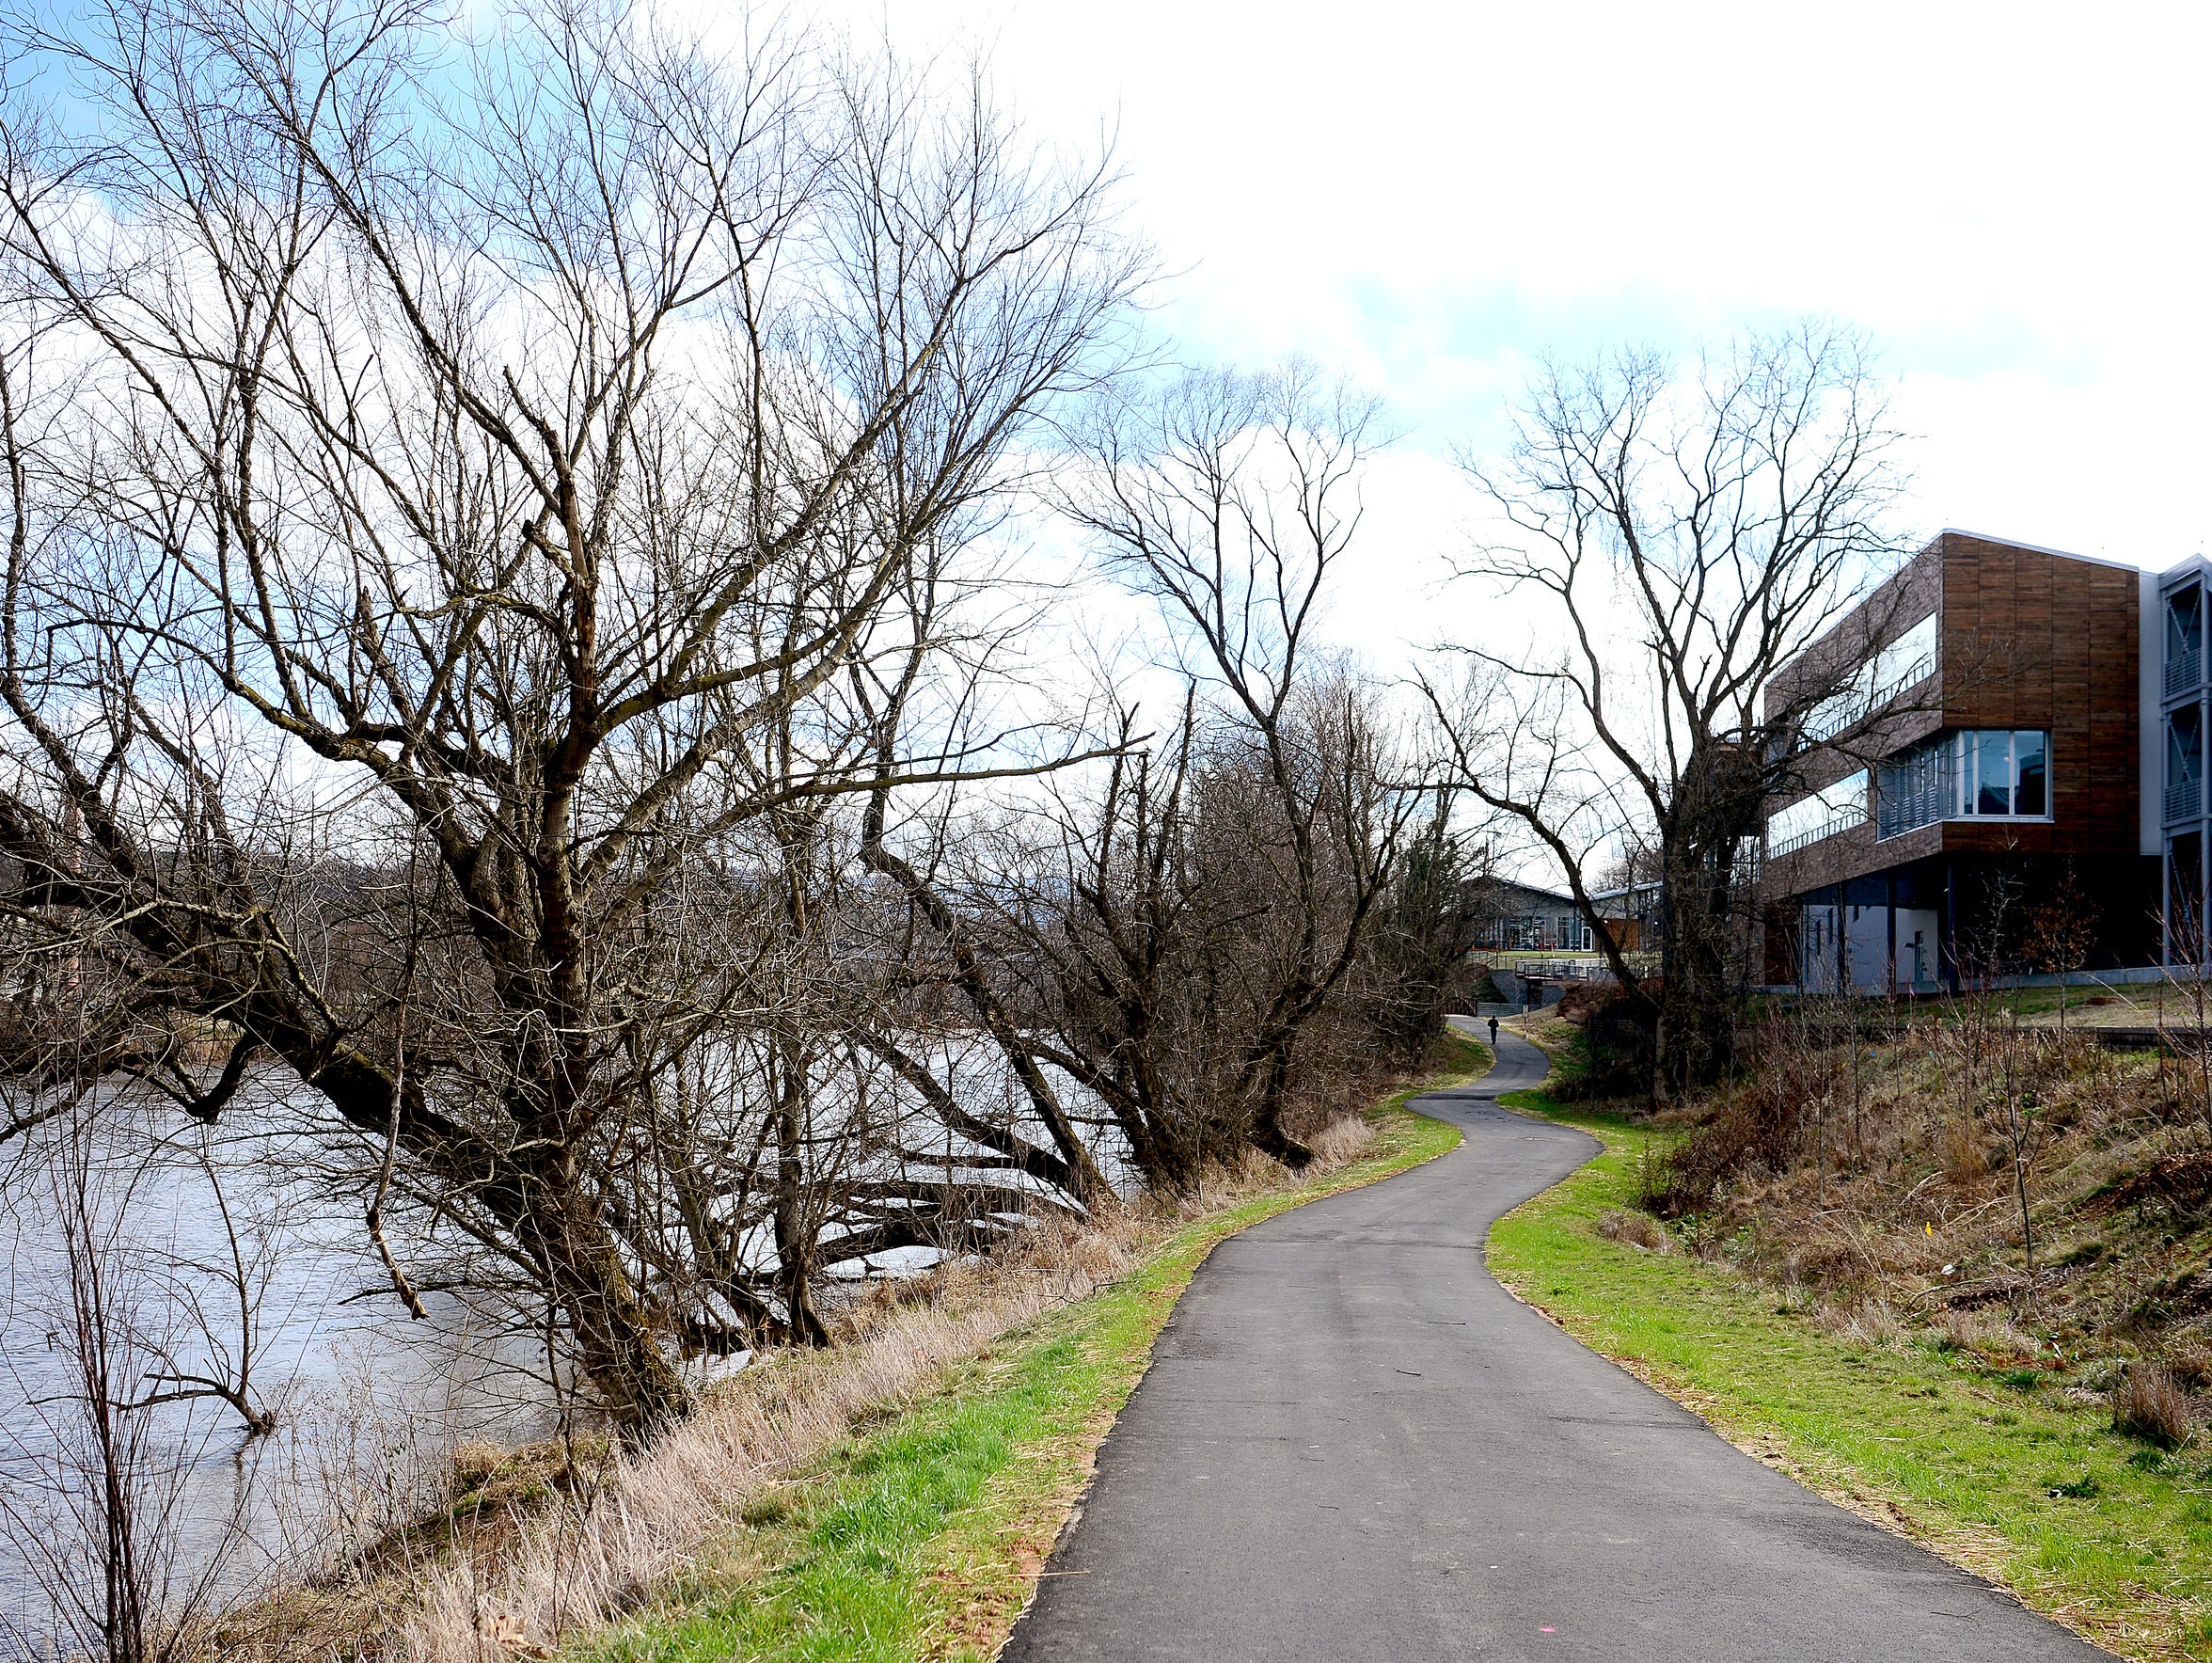 A section of the new French Broad River Greenway runs